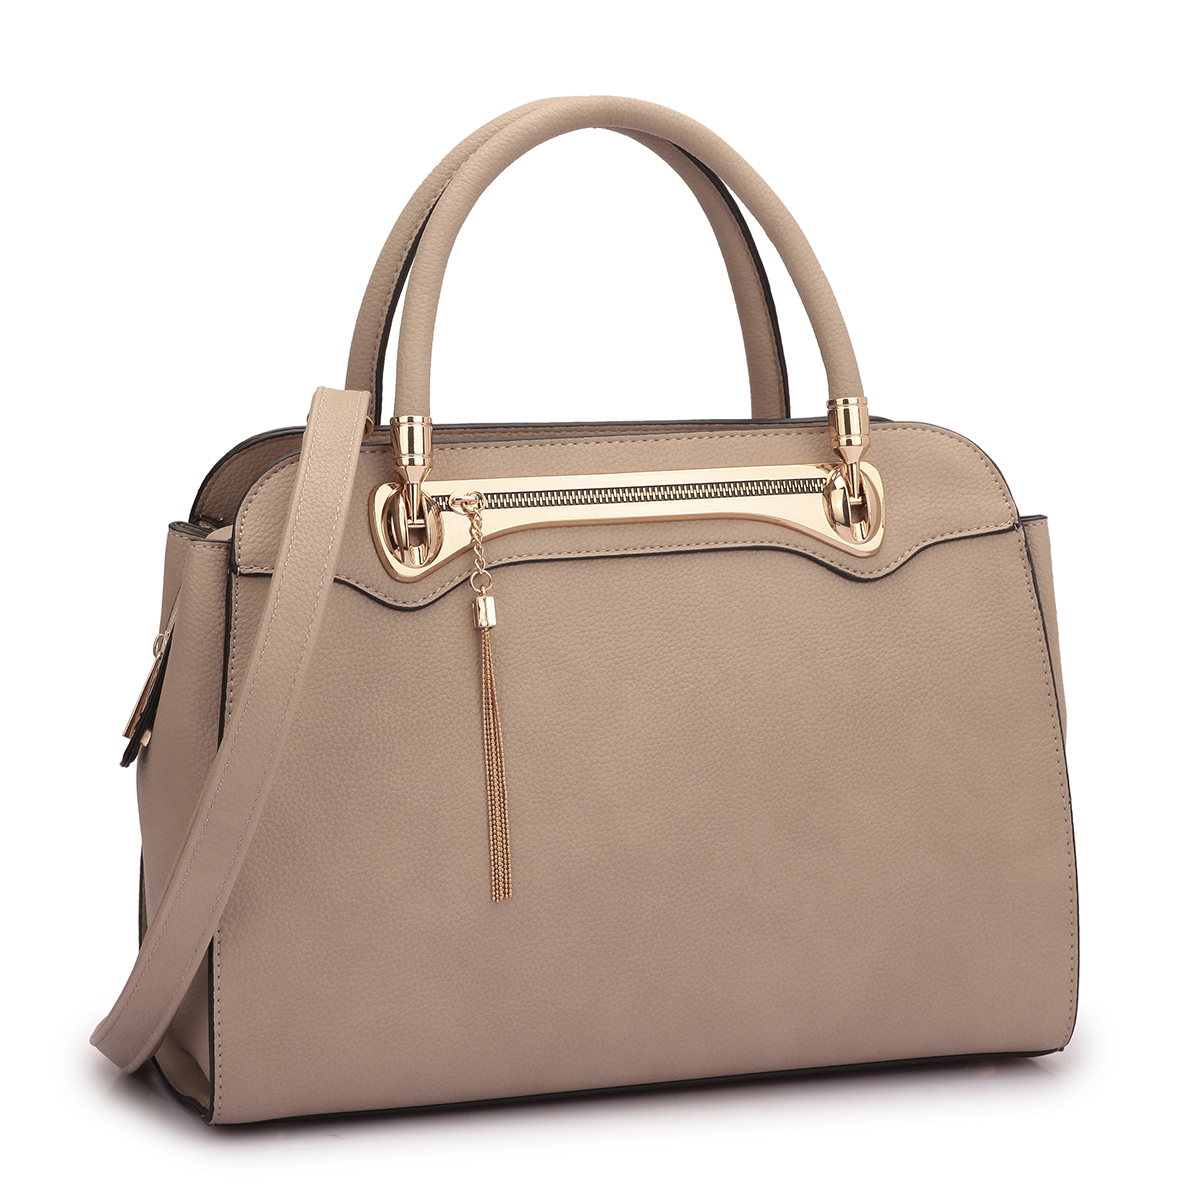 Dasein Fashion Gold Tone Satchel